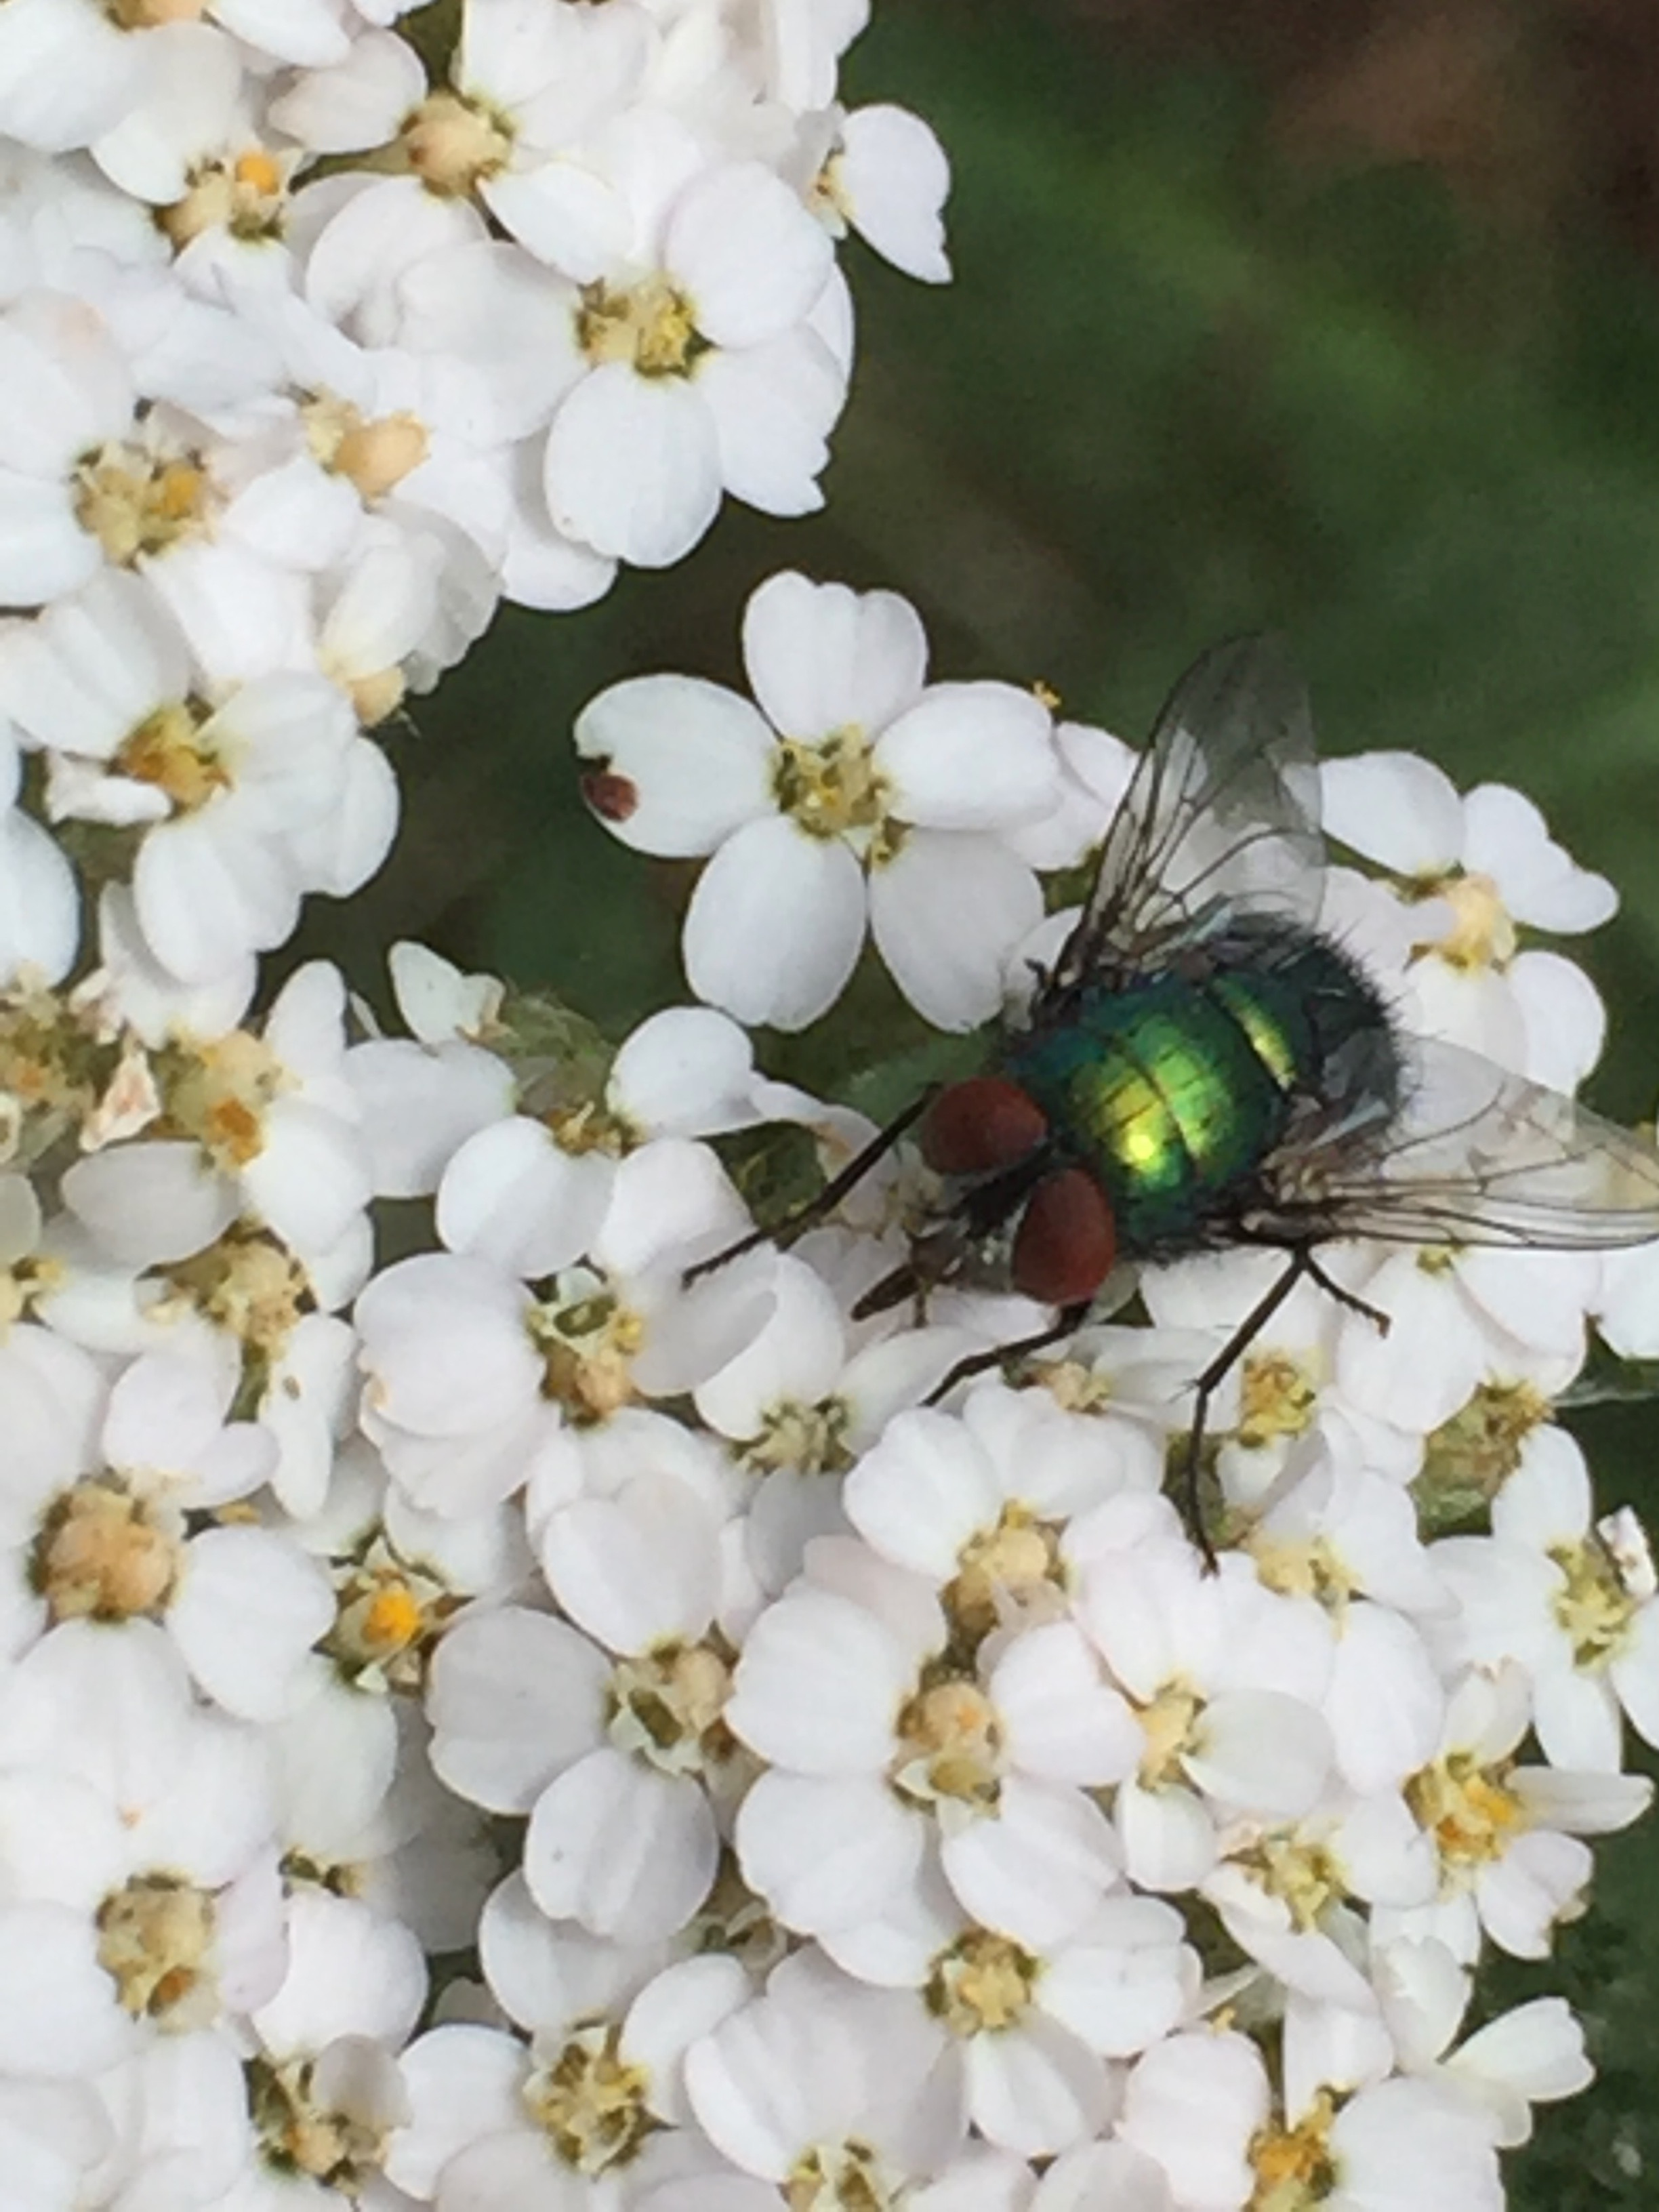 A common green bottle fly